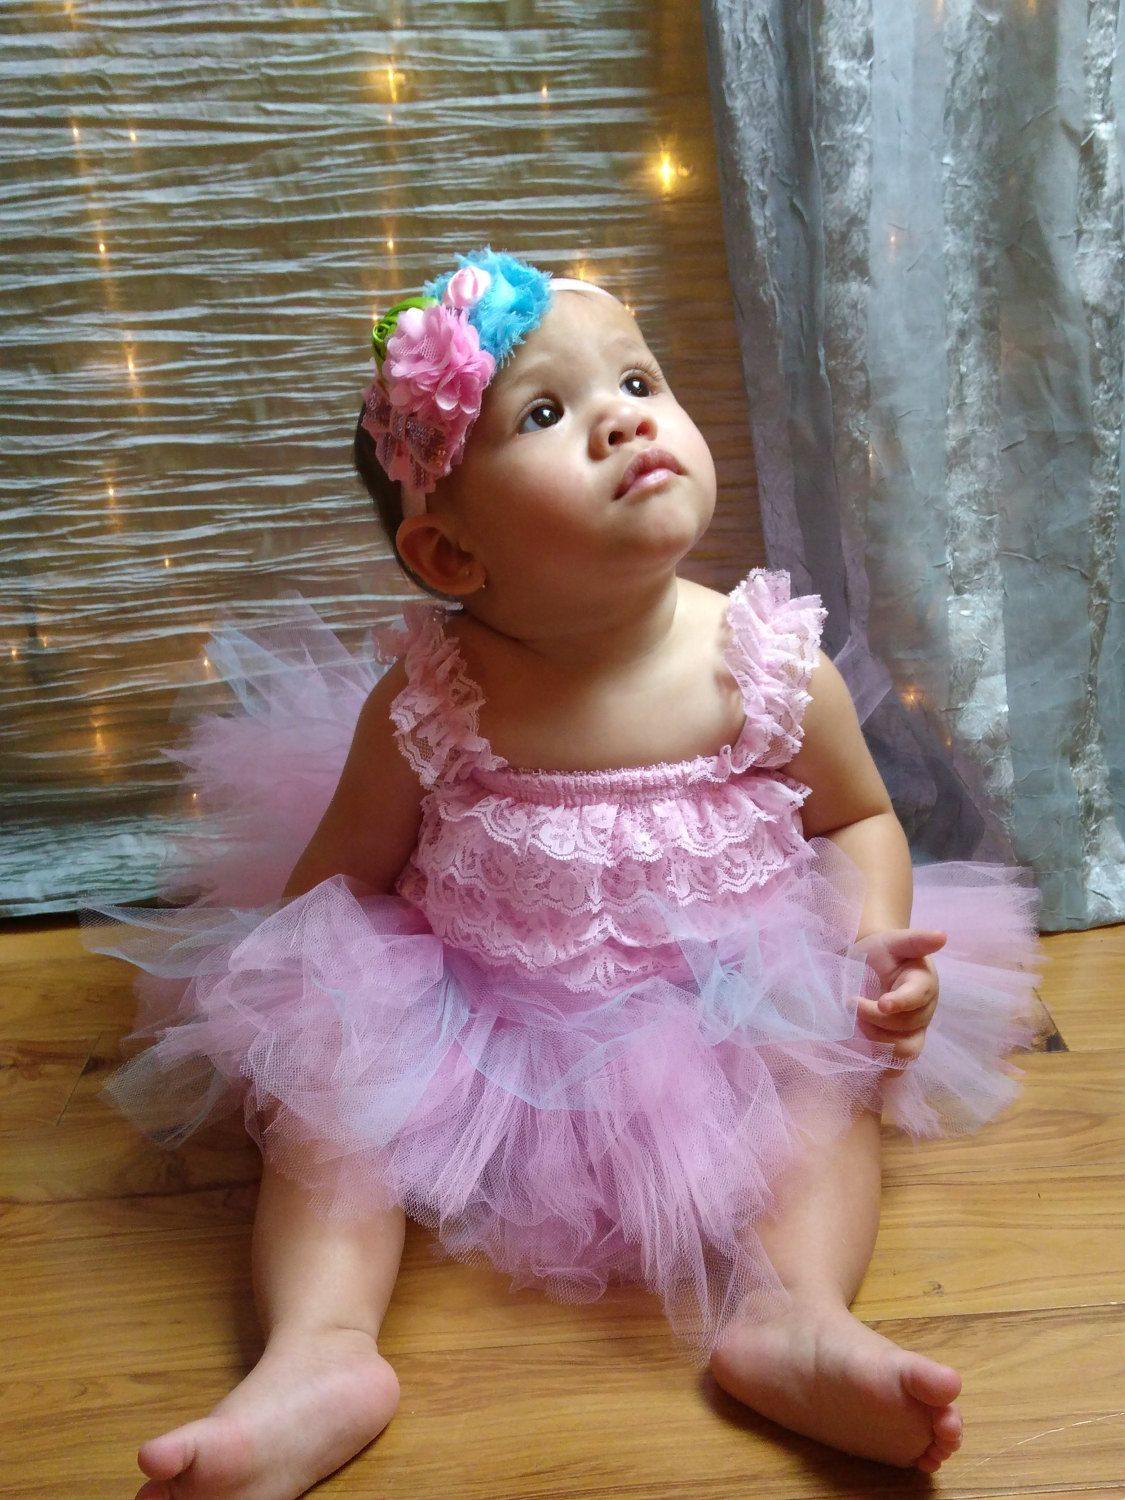 """Cotton Candy Dream Romper, Tutu, & Headband Set by MolinasBebe on Etsy  ***Free shipping in the USA*** Tutus are customizable 0-3 months 12""""waist 6.5 length 3-6 months 14"""" waist 7.5 length 6-12 months 16"""" waist 8.5 length 12-24 months 18"""" waist 9.5 length or a longer 10 length"""